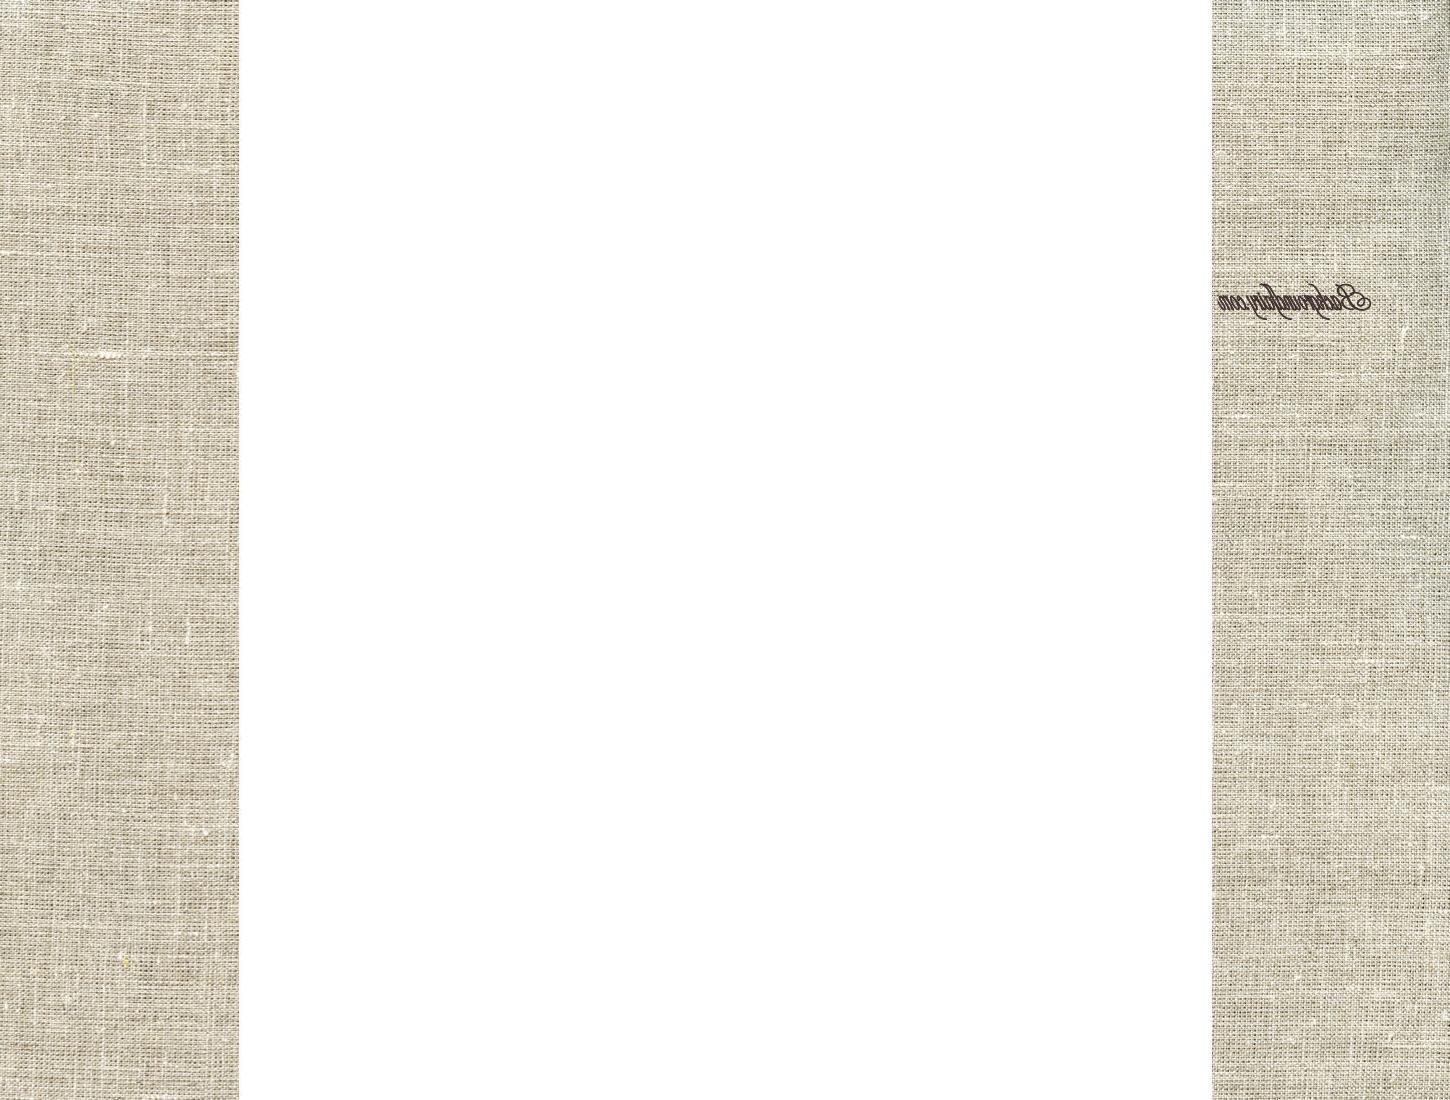 Natural Linen Background - For